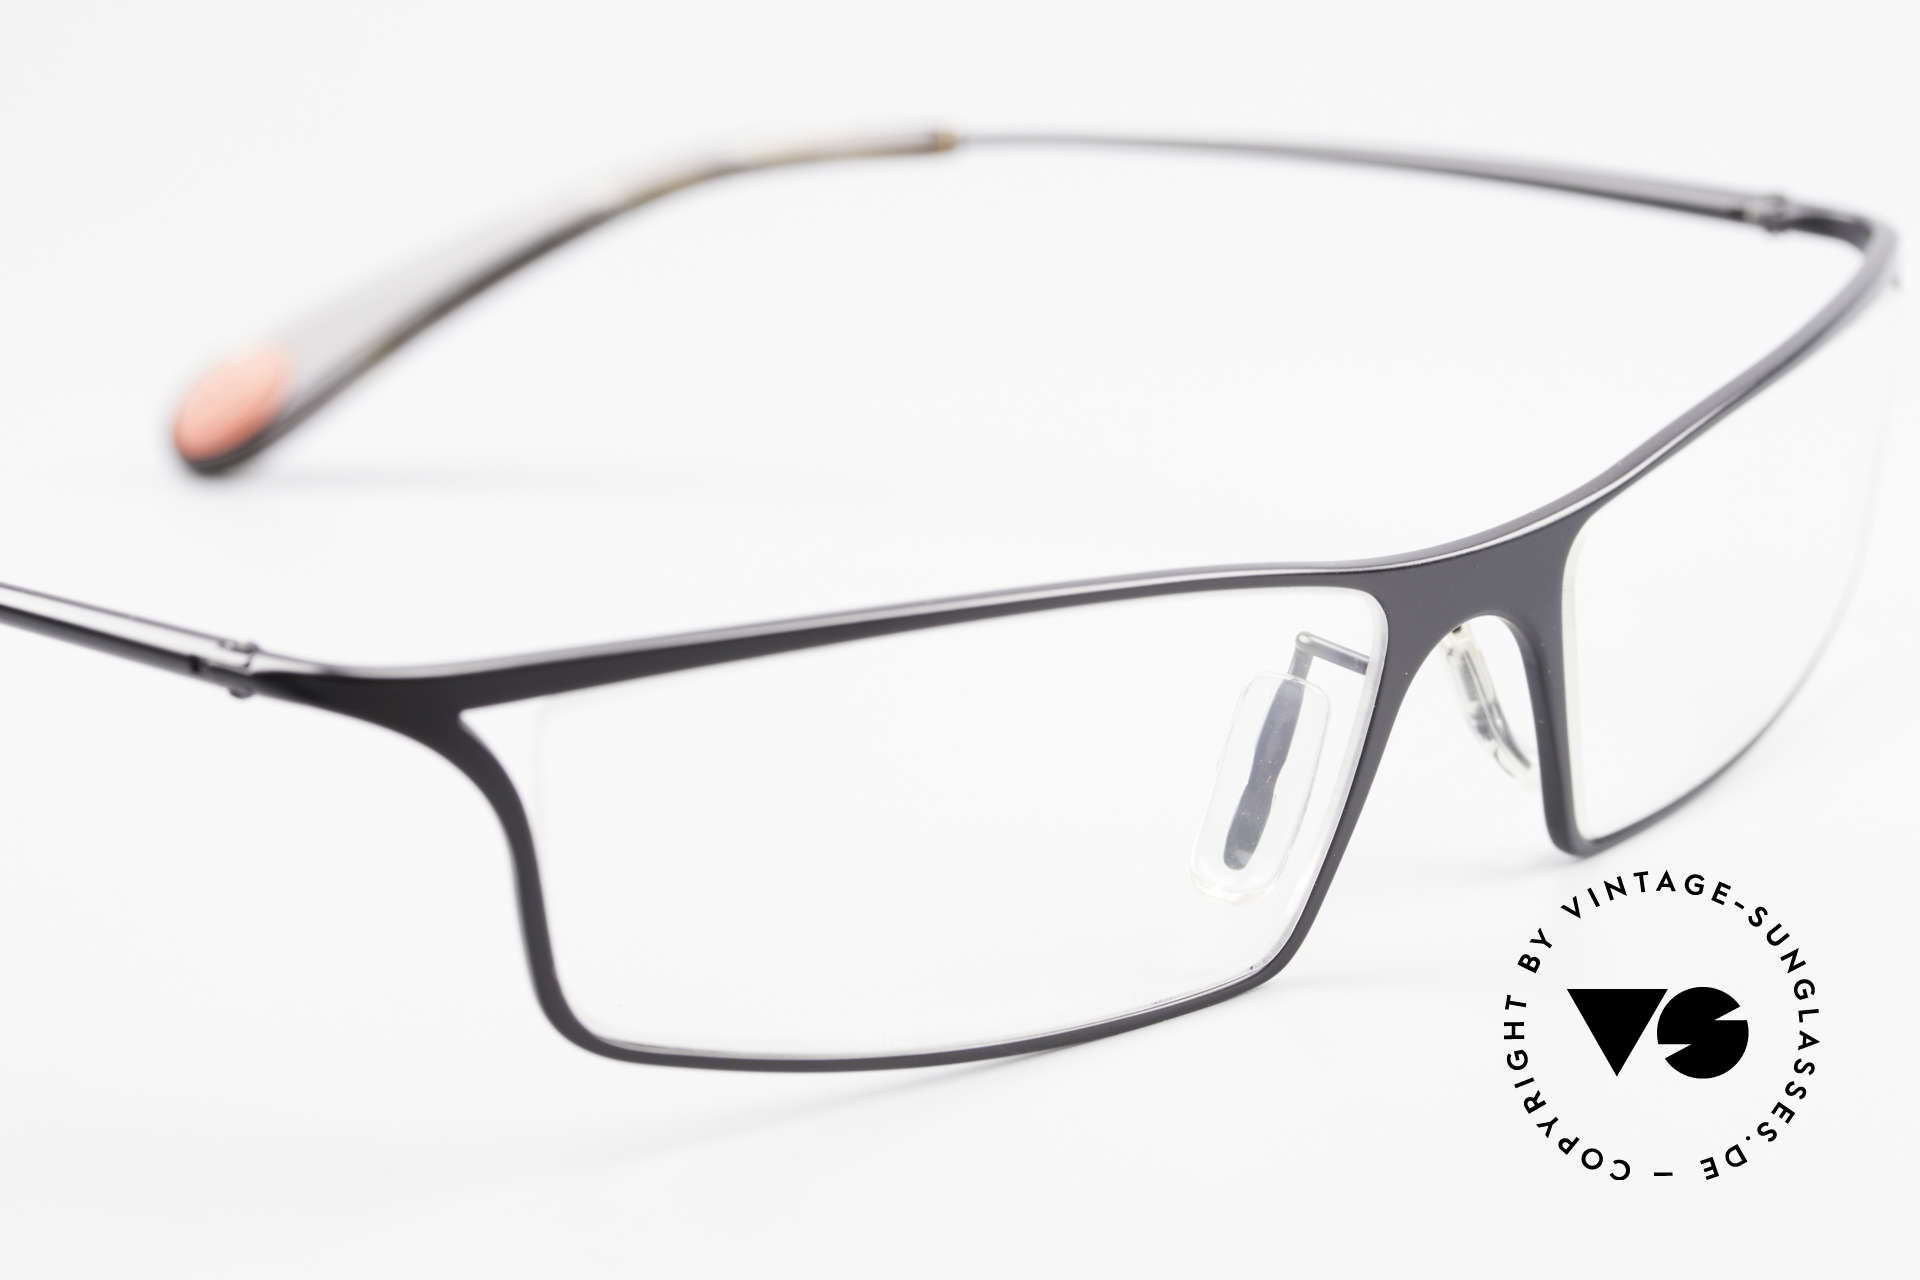 Bugatti 352 Odotype Heston Blumenthal Spectacles, chef Heston Blumenthal wears these glasses, Made for Men